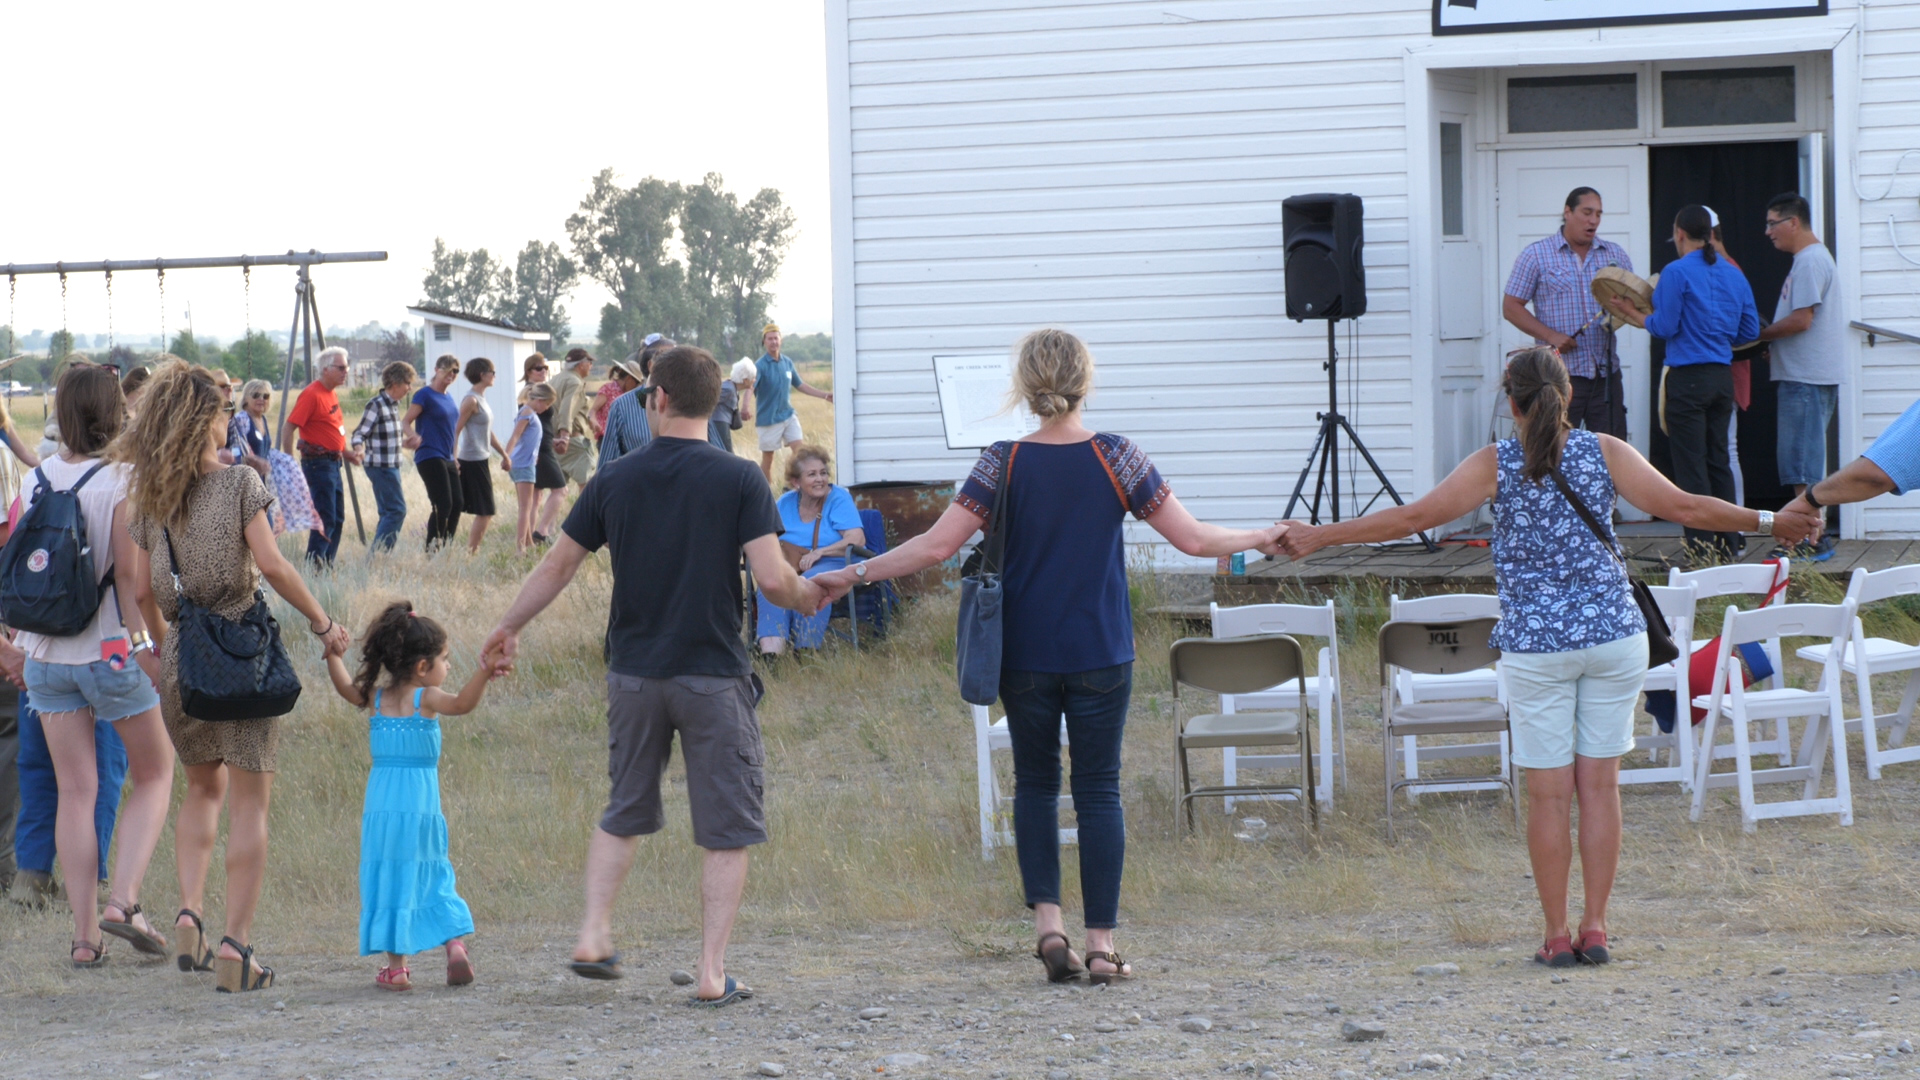 Guests joined hands and did a Native American round dance during the opening of the installation.